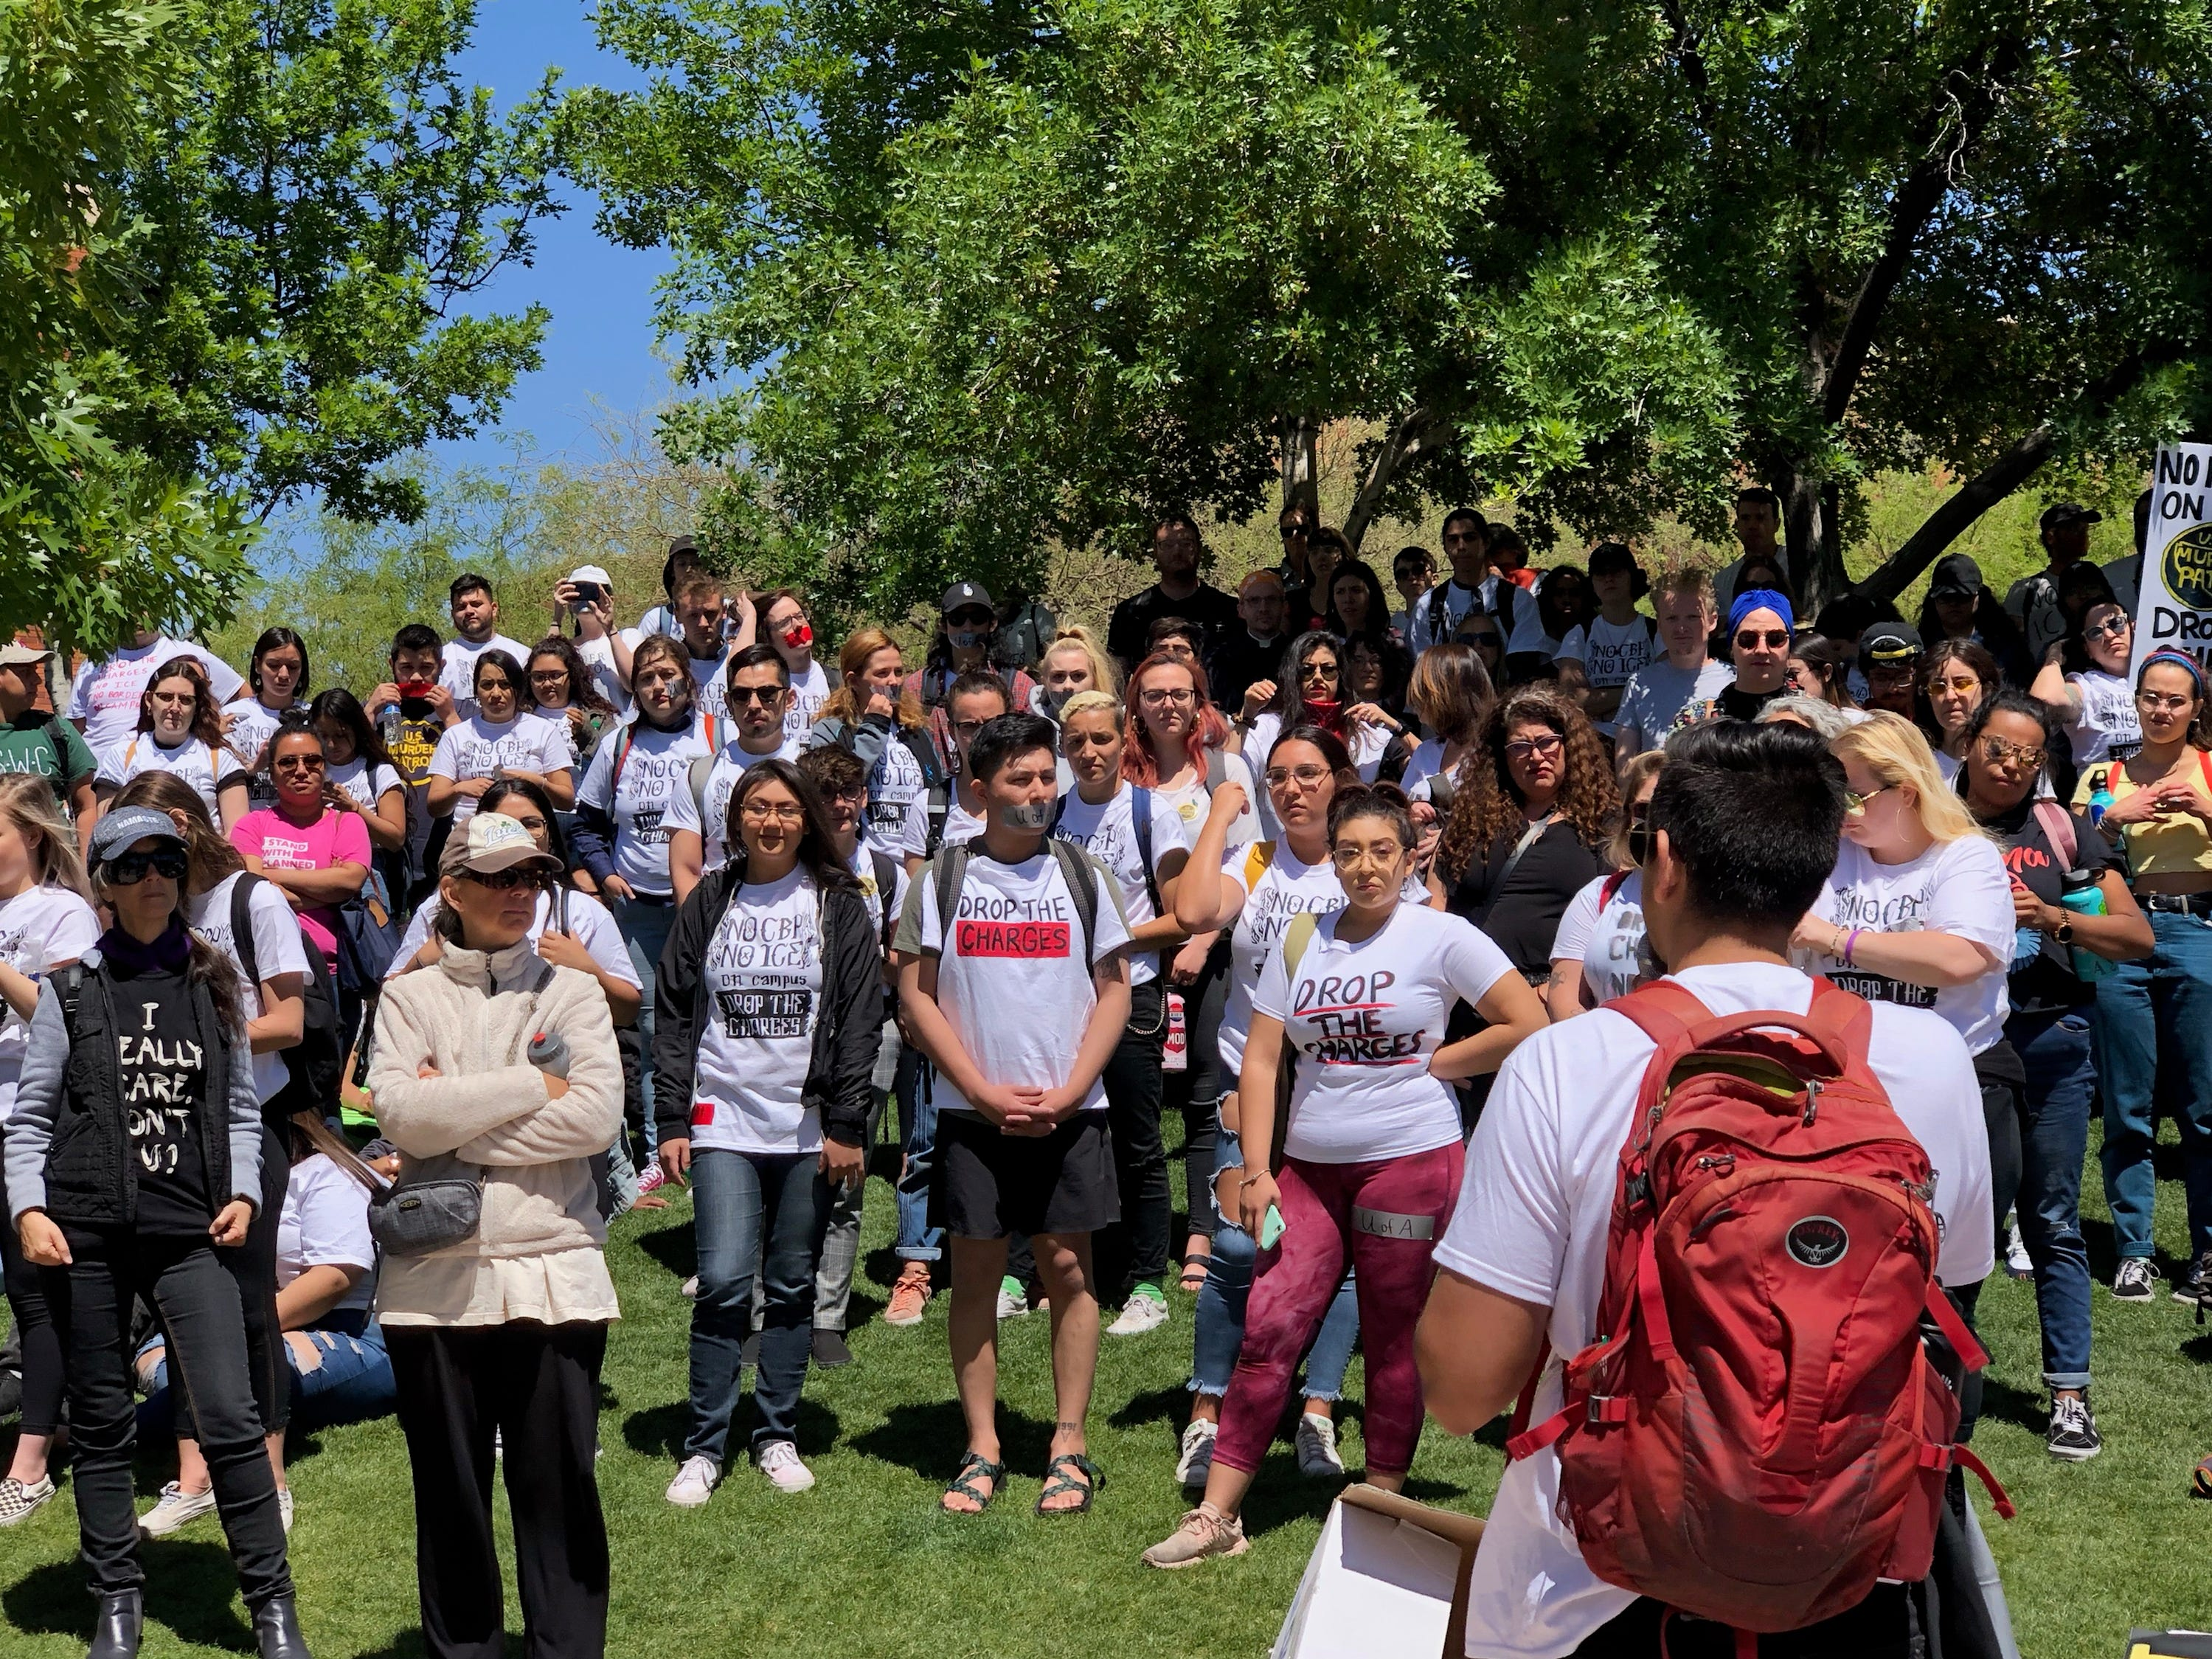 Hundreds of students attend the Arizona Board of Regents meeting in Tucson on April 11, 2019, to protest the charges against three students in the Border Patrol protest March 19.